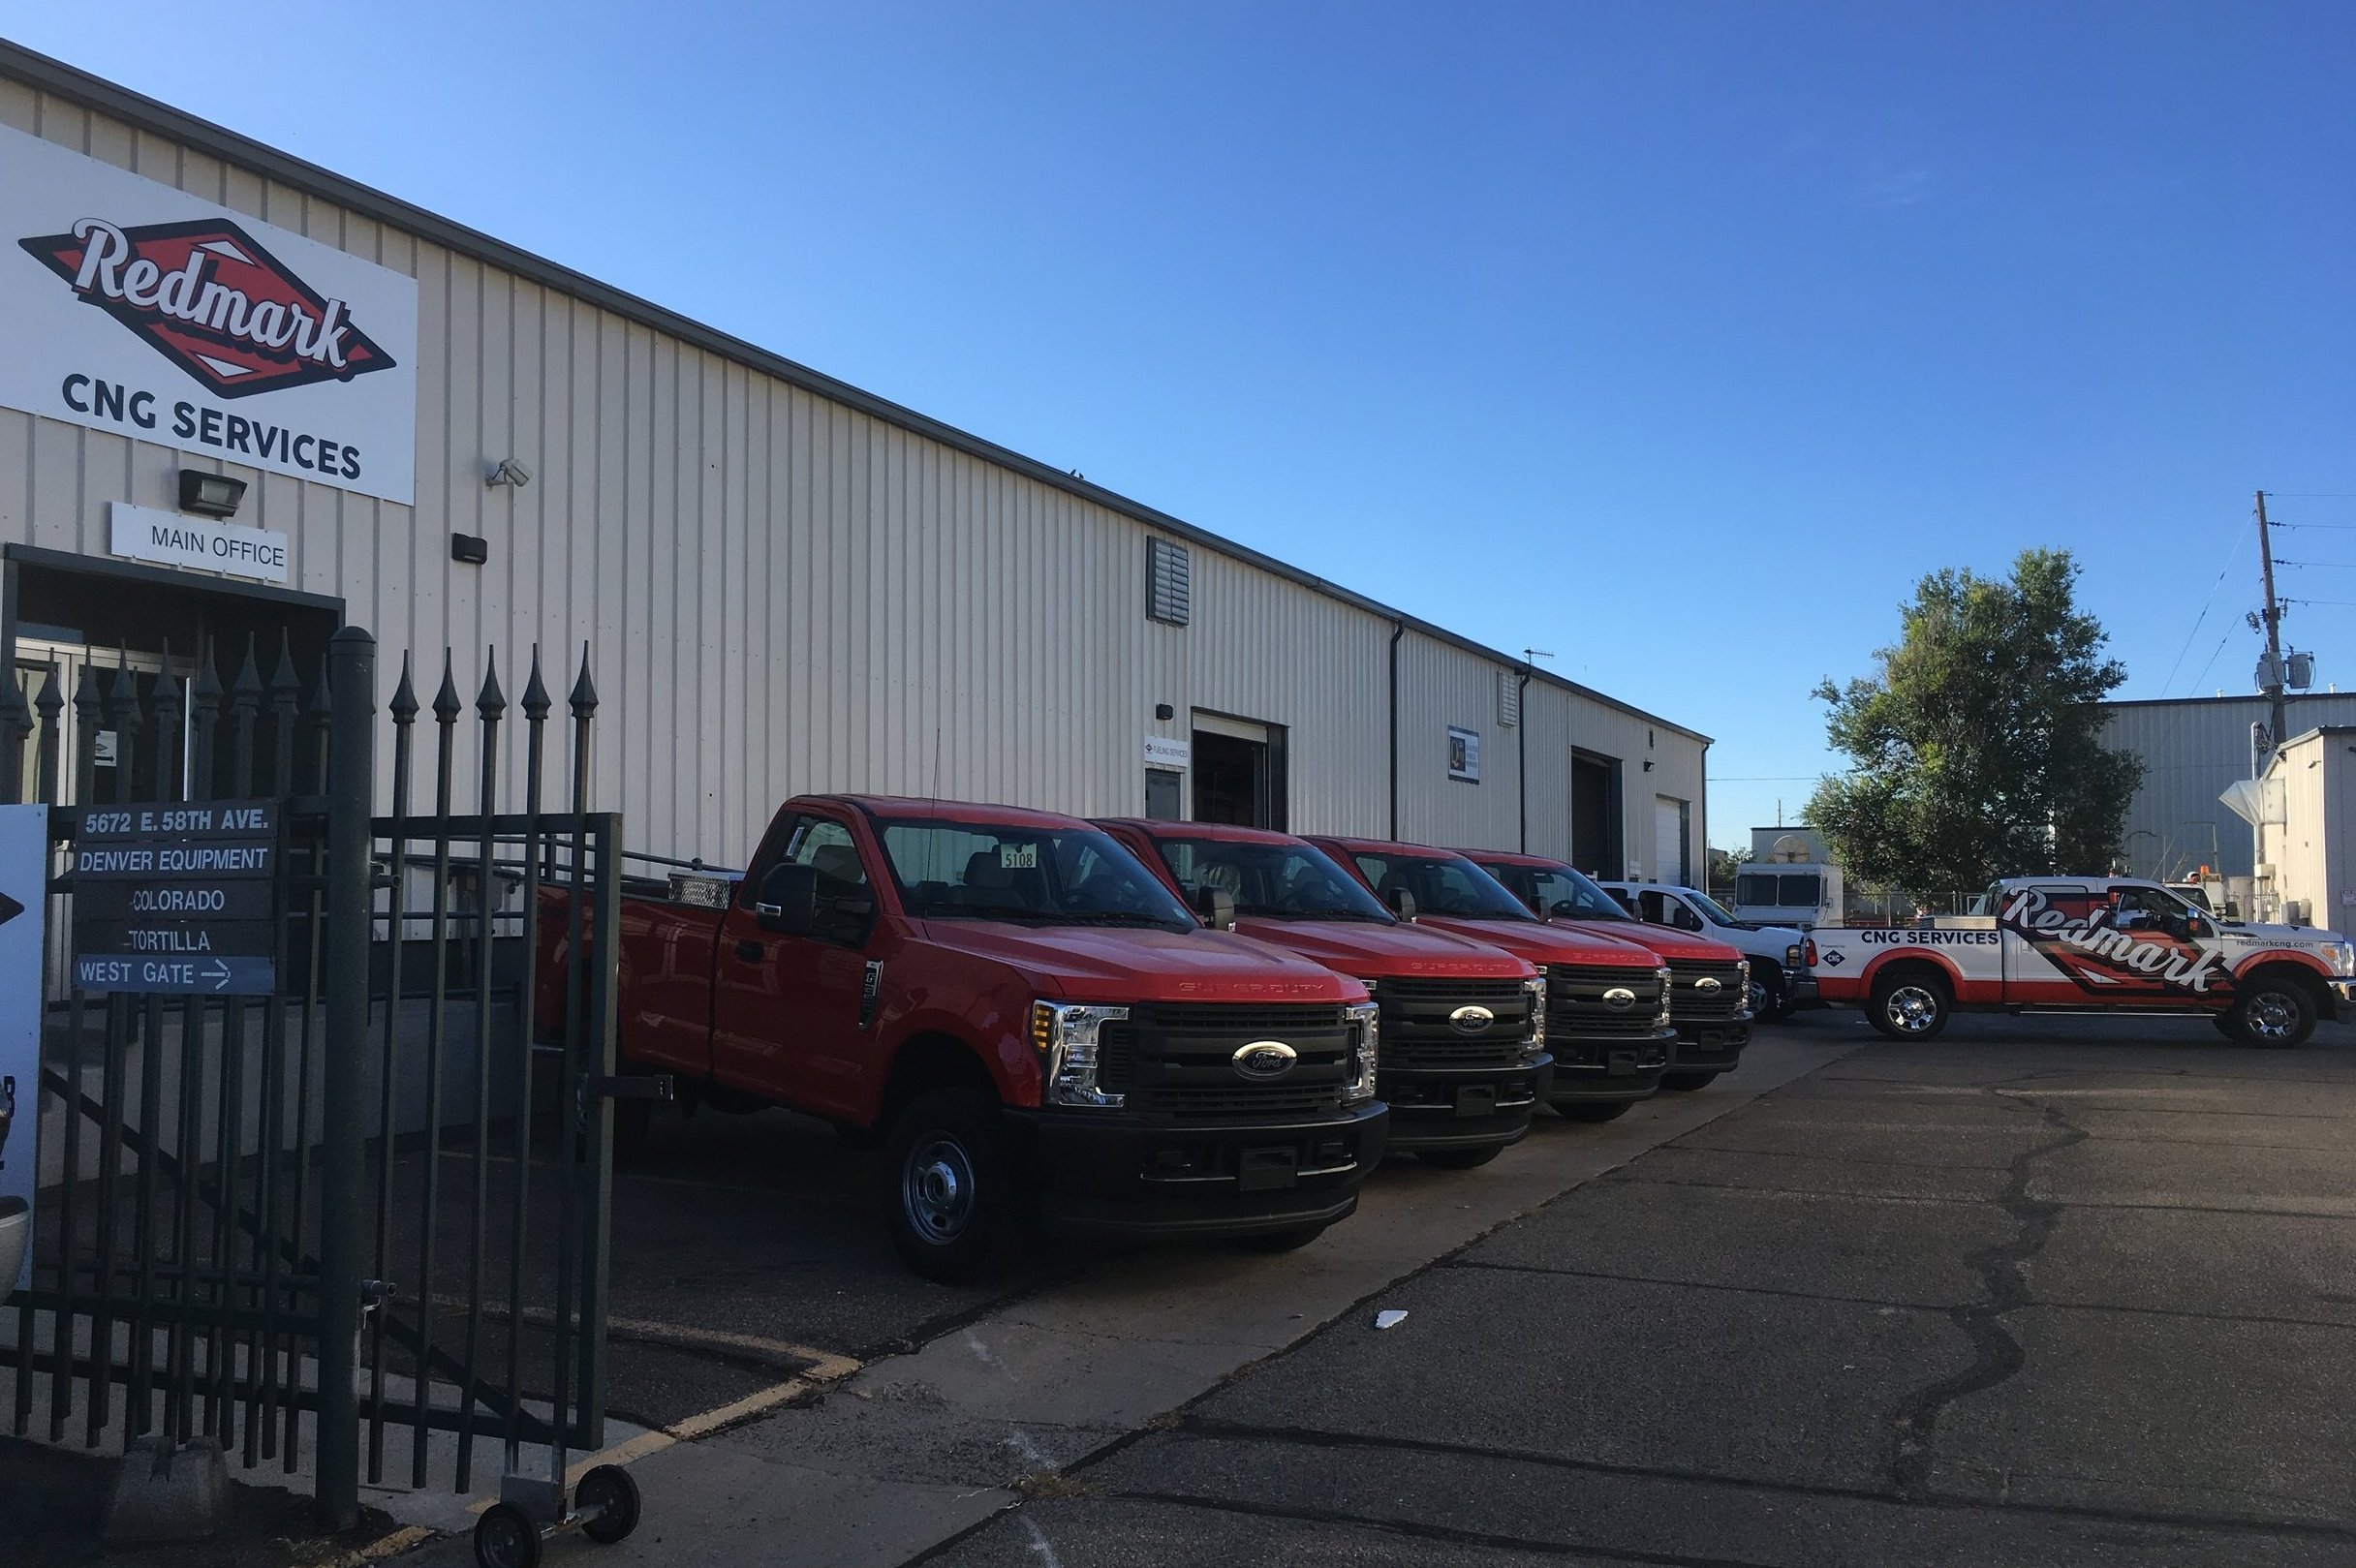 New Ford MY 2017 Vehicles, upfit under the Ford QVM Program at Redmark CNG; ready for delivery to the customer through Spradley Barr Ford for the City of Gunnison.